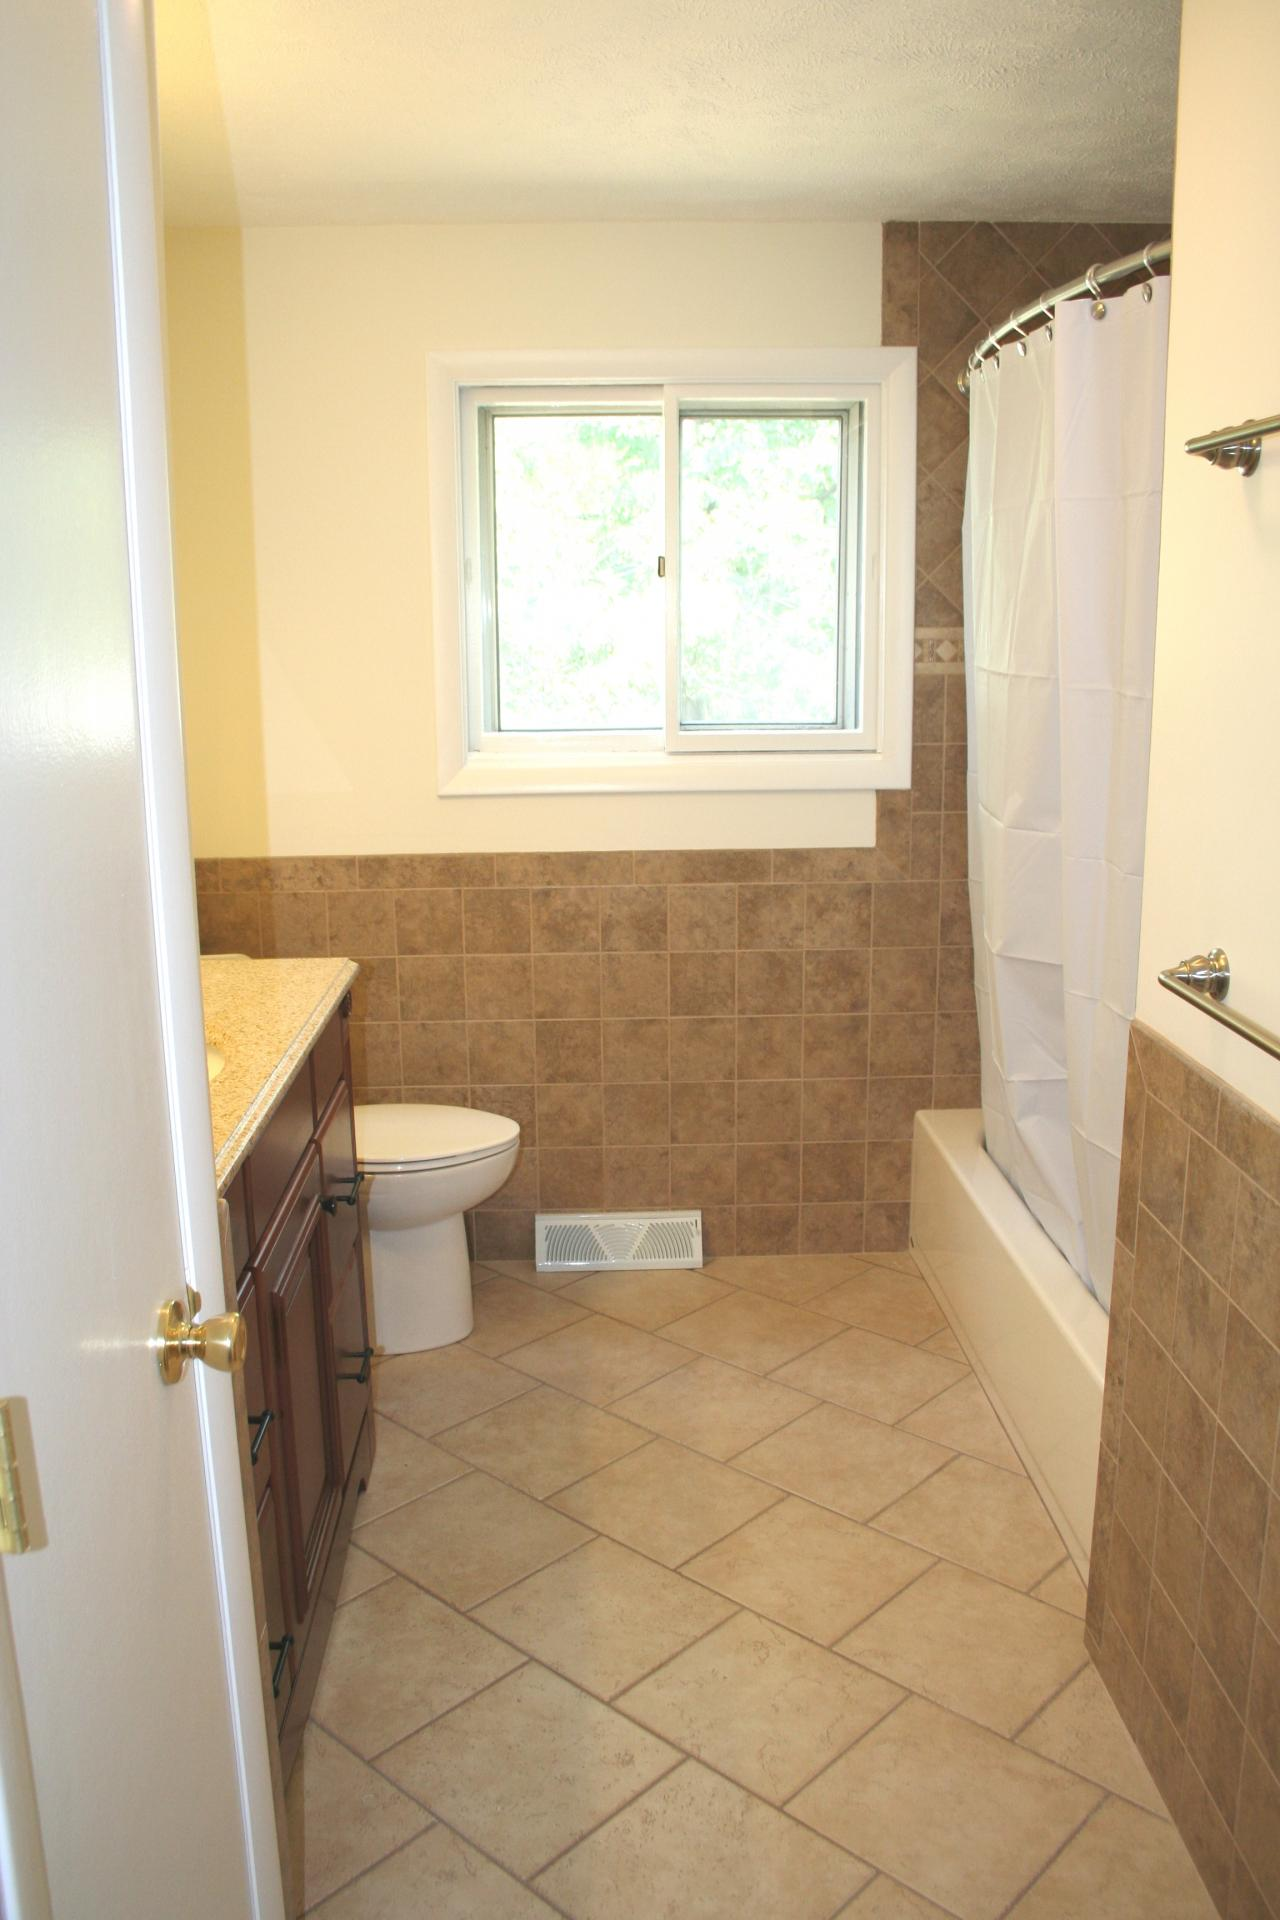 Mentor ohio bathroom with 12x12 inch diagonal floor and 6x6 wall tile